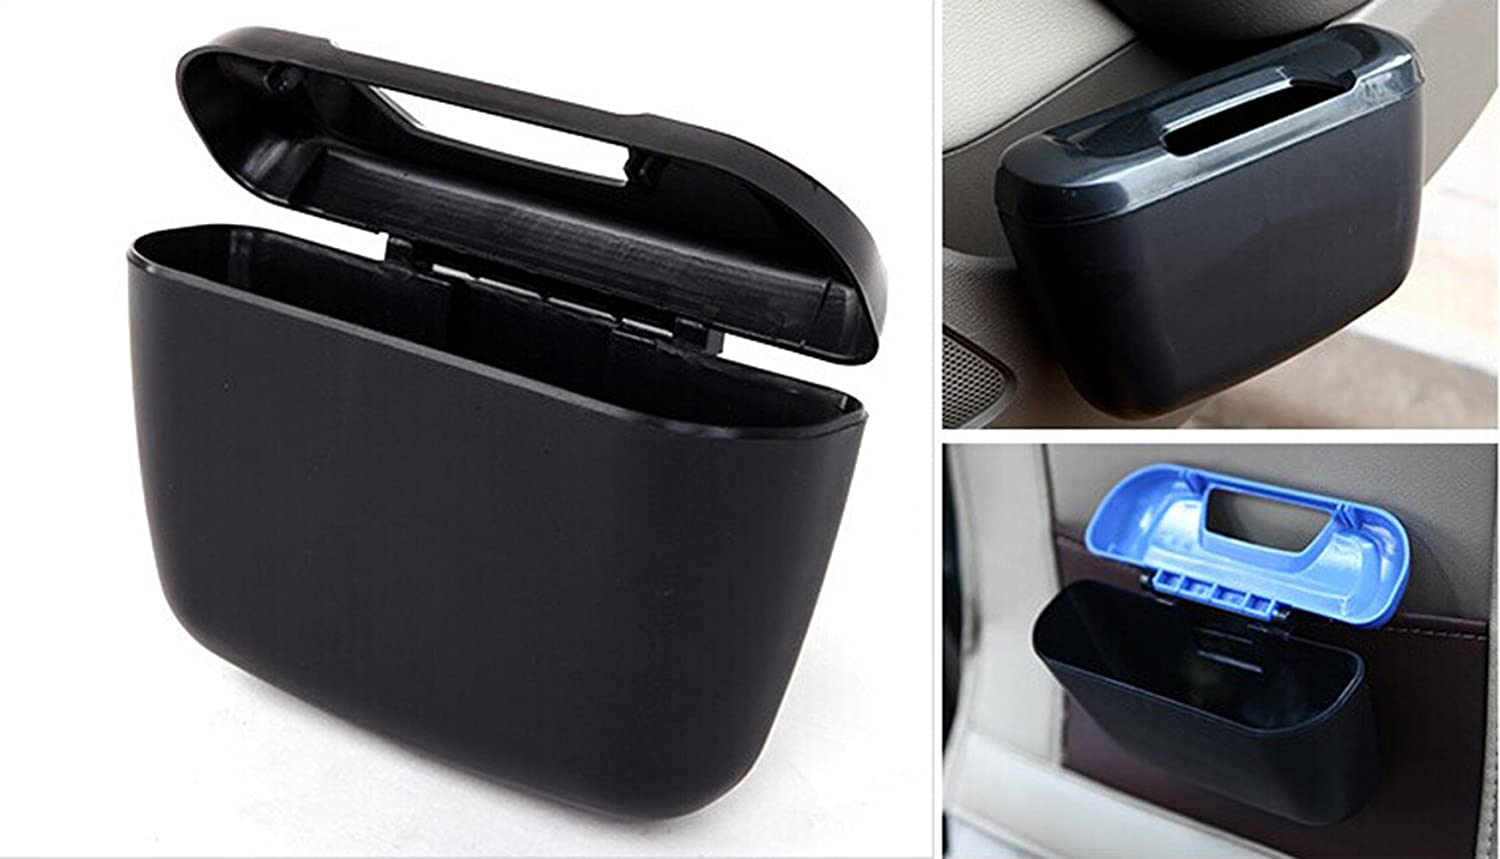 Car Garbage Can, Mini Auto Environment Cargo Trash Can Multifunction Plastic Storage Box Container Black Yosoo